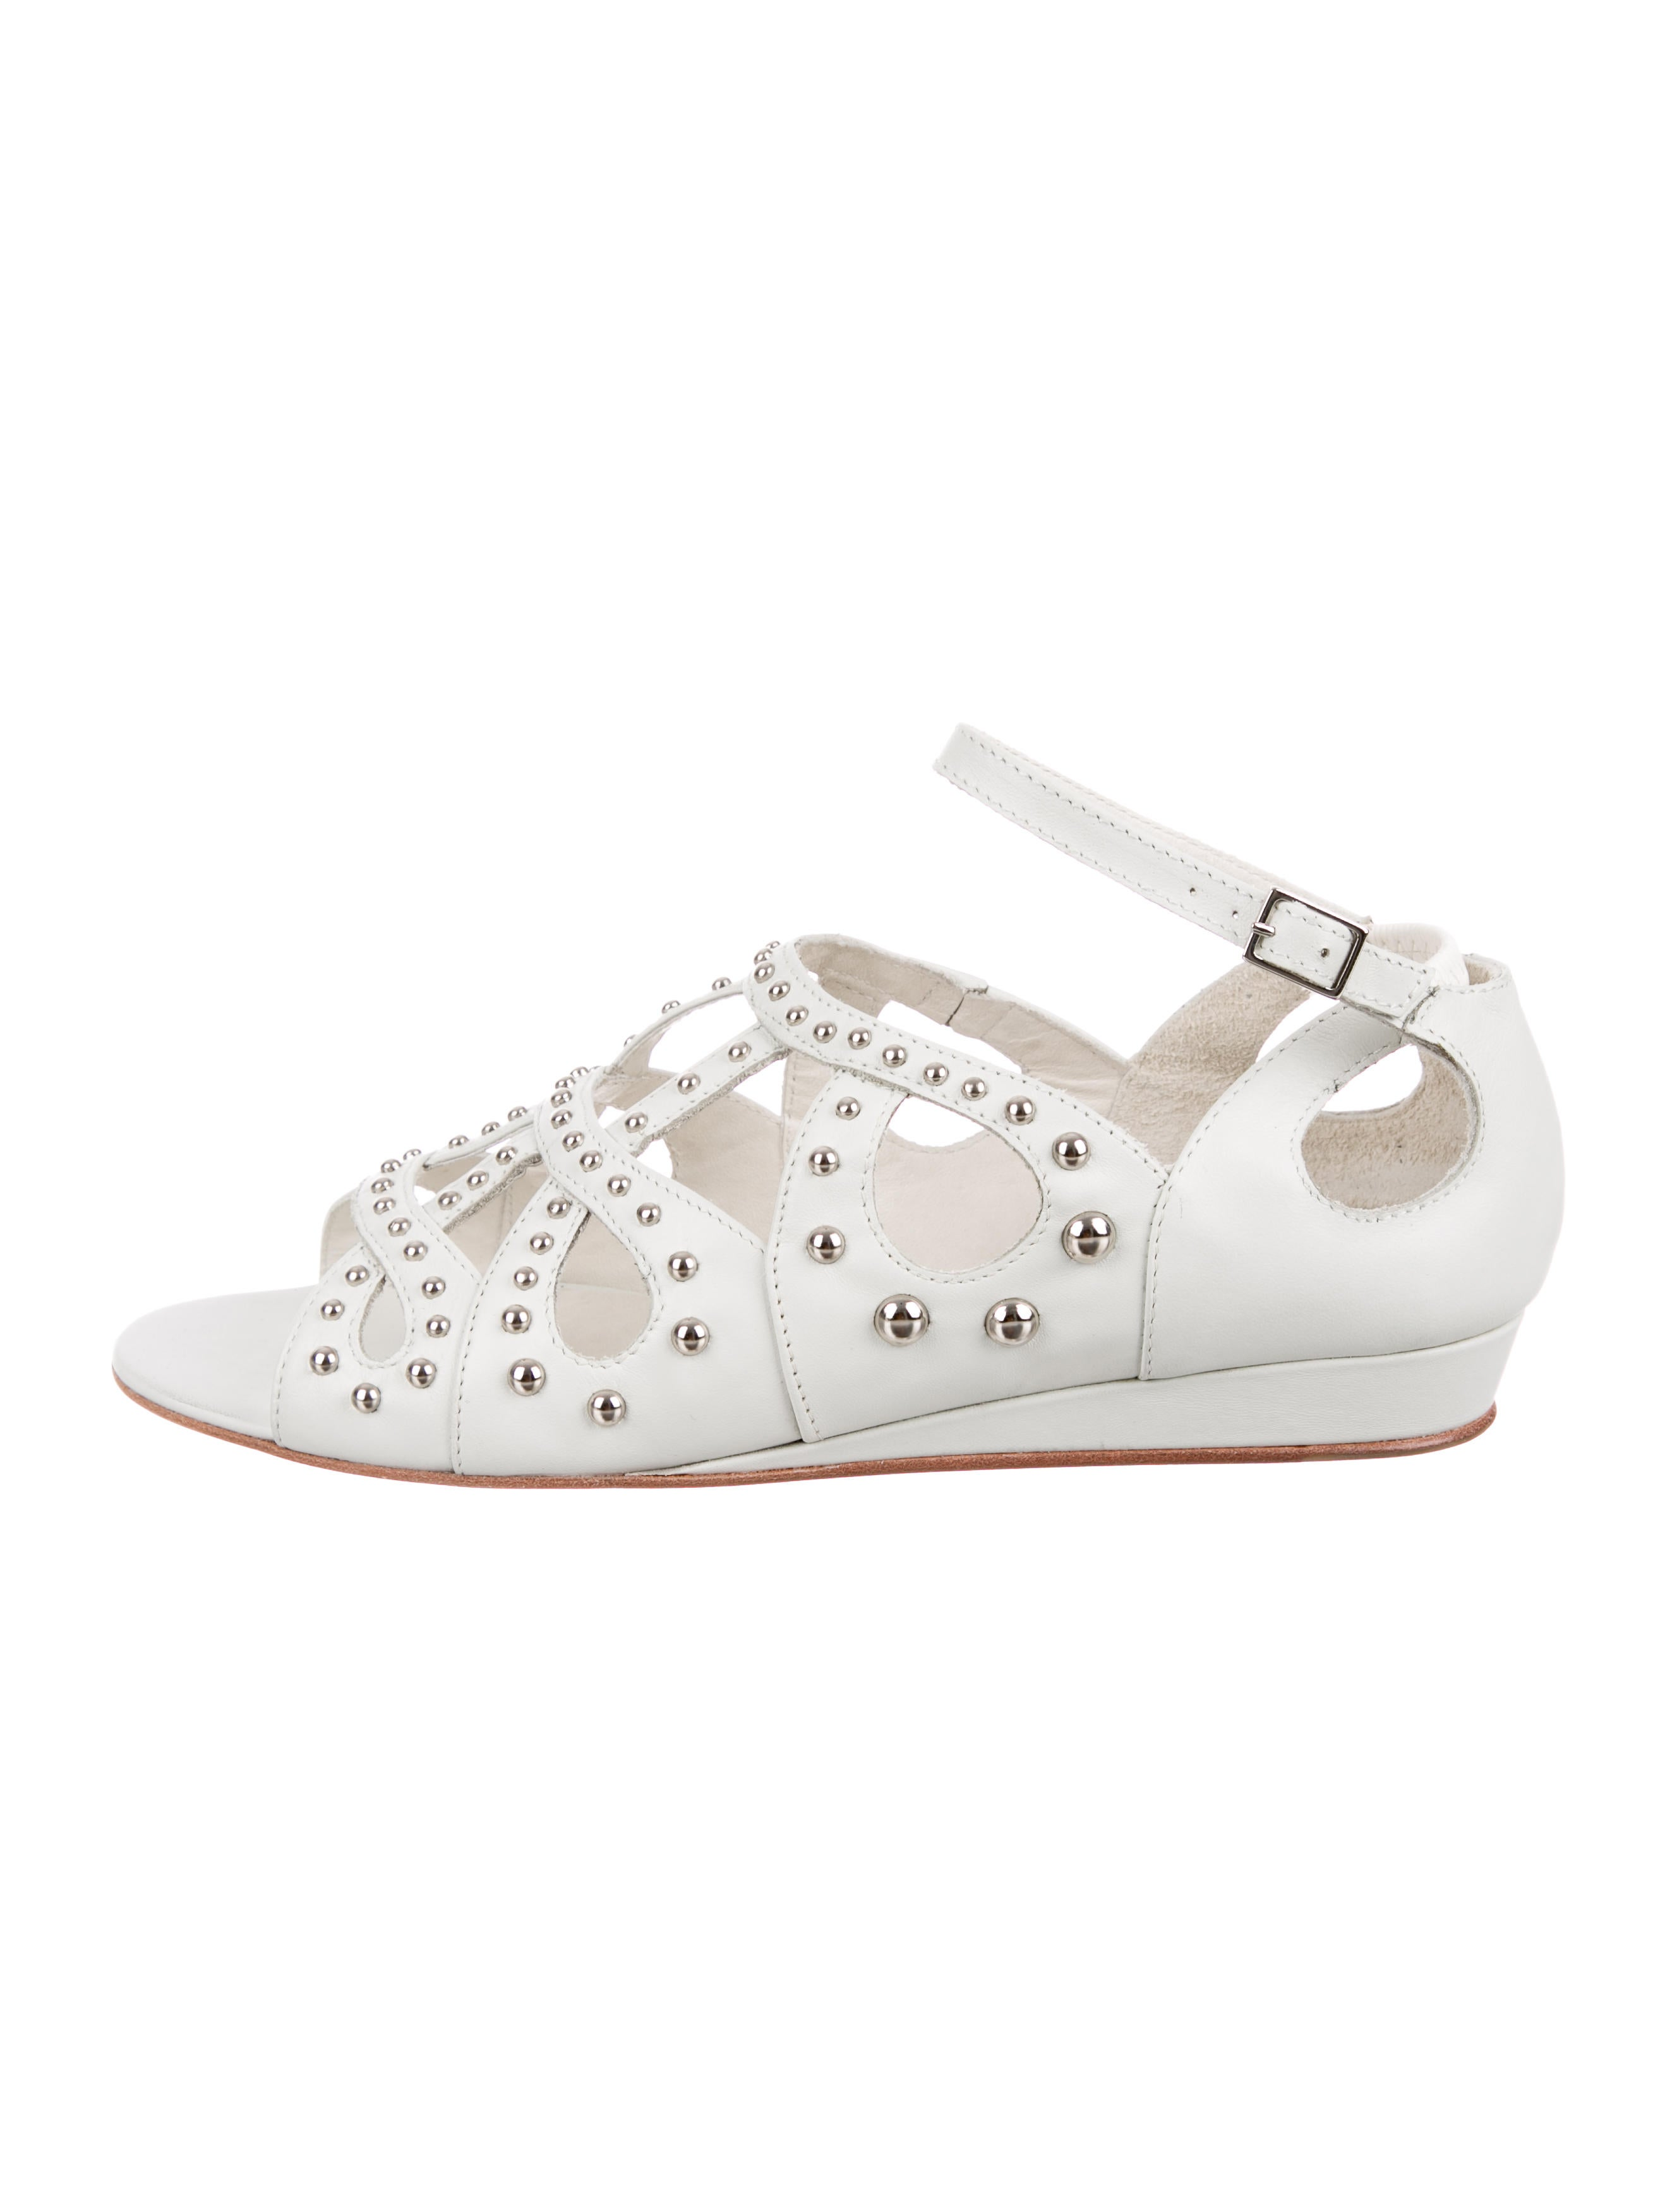 Maje Stud-Embellished Caged Sandals w/ Tags geniue stockist for sale discount 2015 best sale XHf2B2F